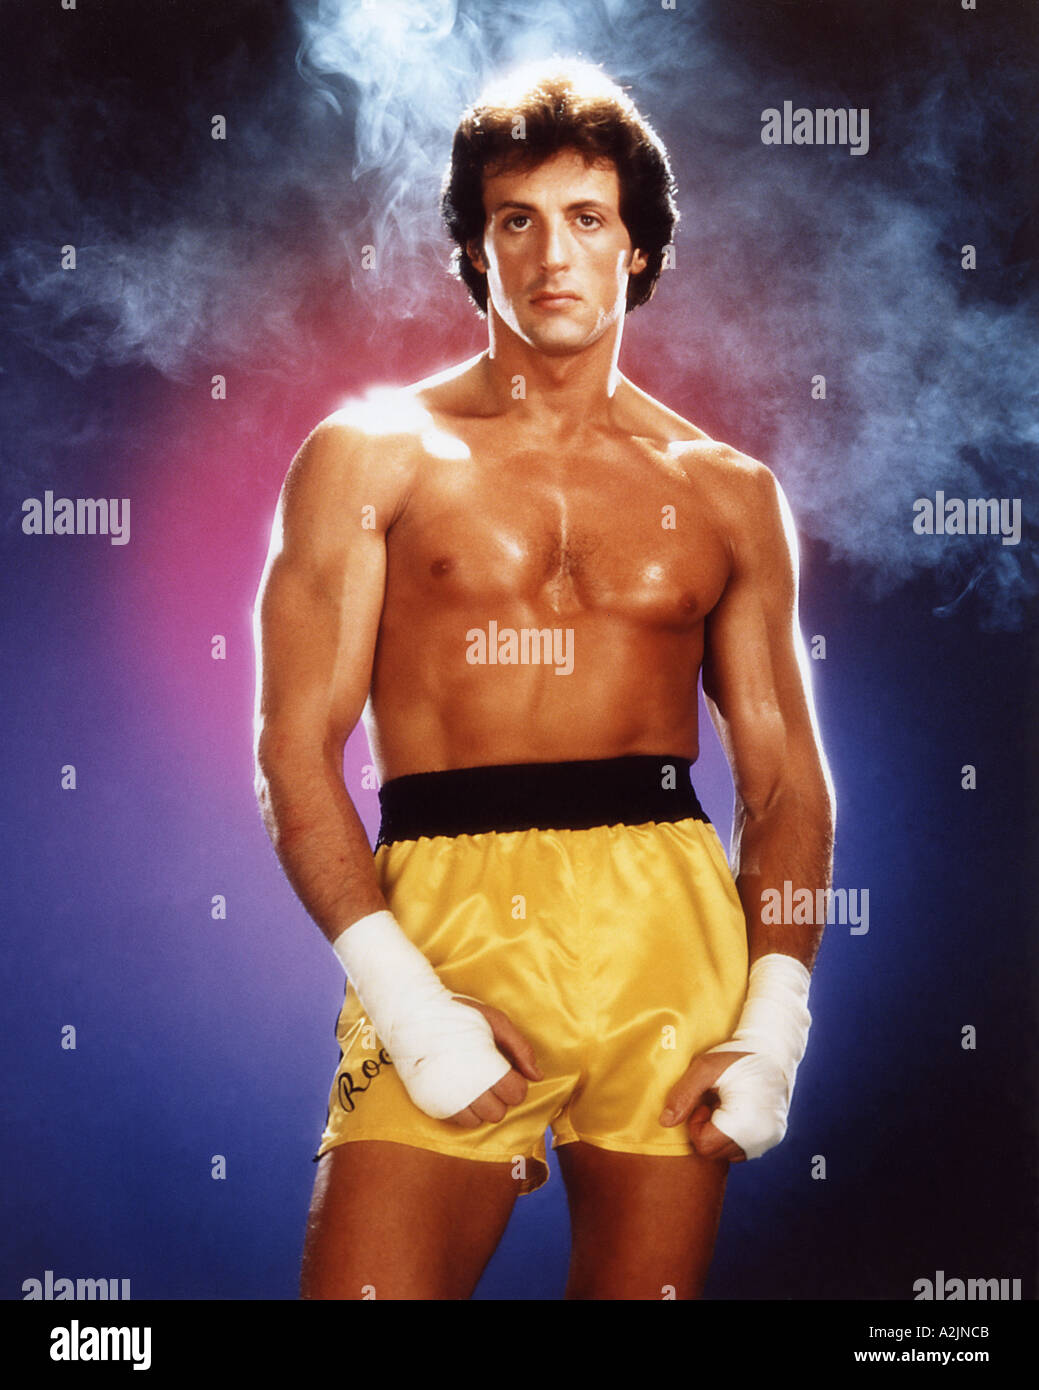 ROCKY III 1982 film starring Sylvester Stallone as Rocky Balboa - Stock Image